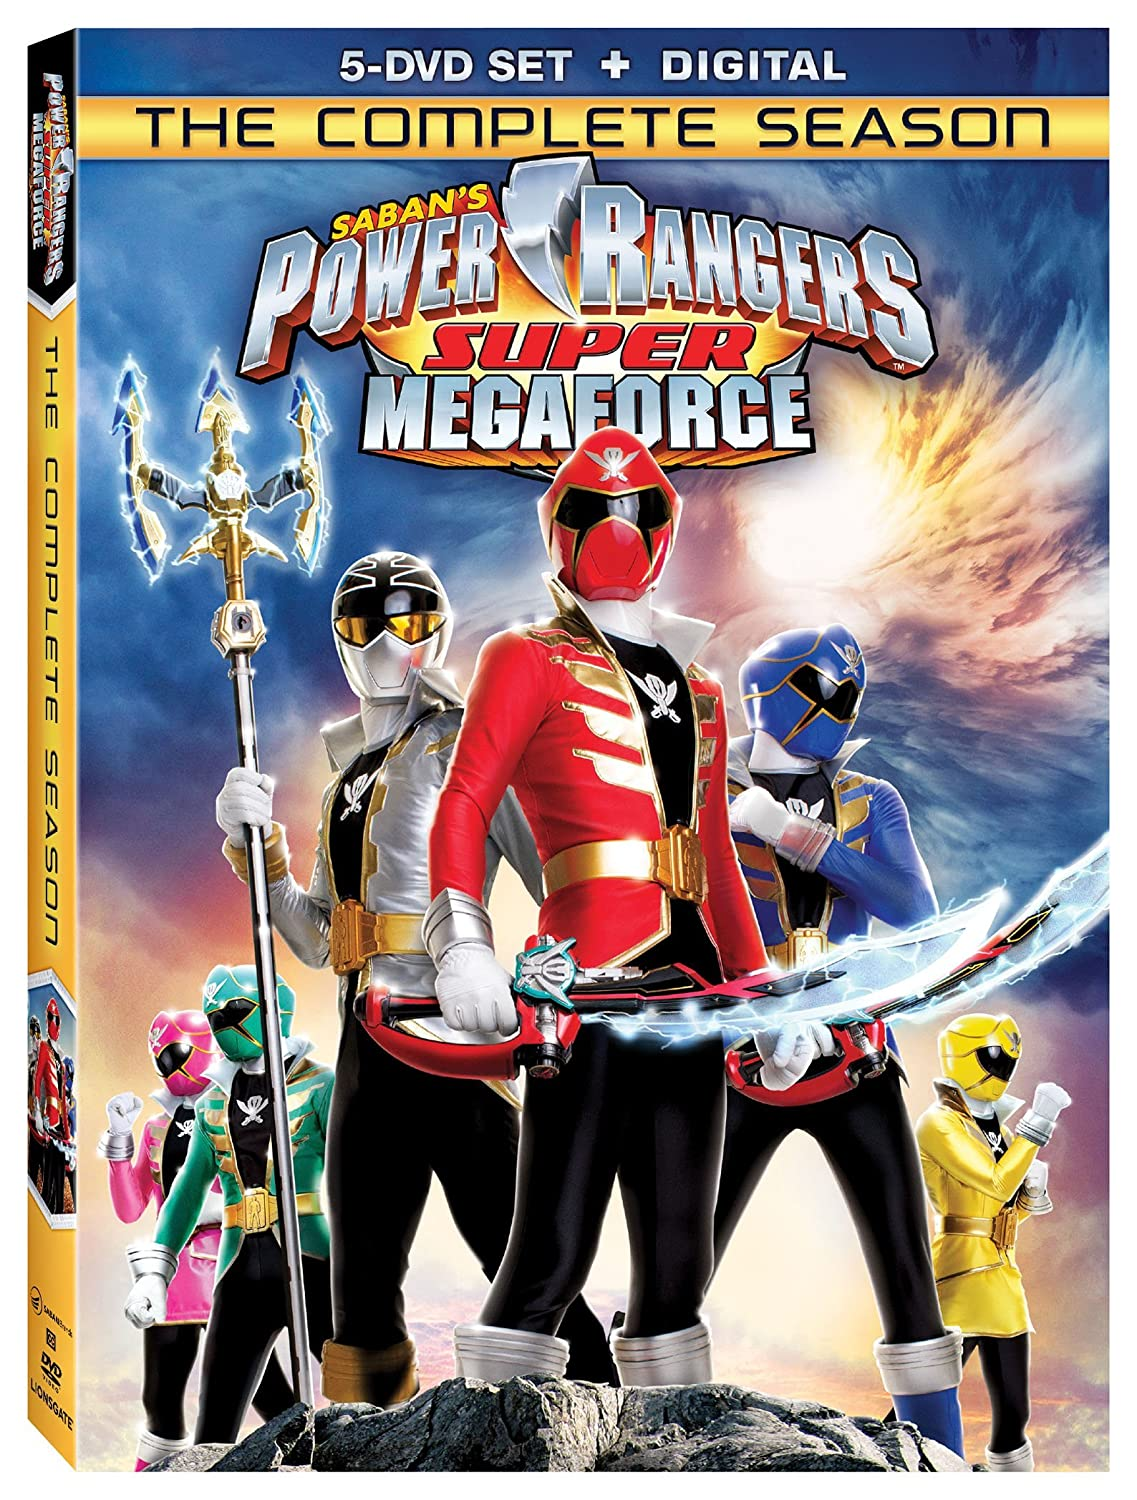 Amazon.com: Power Rangers Super Megaforce: The Complete ...